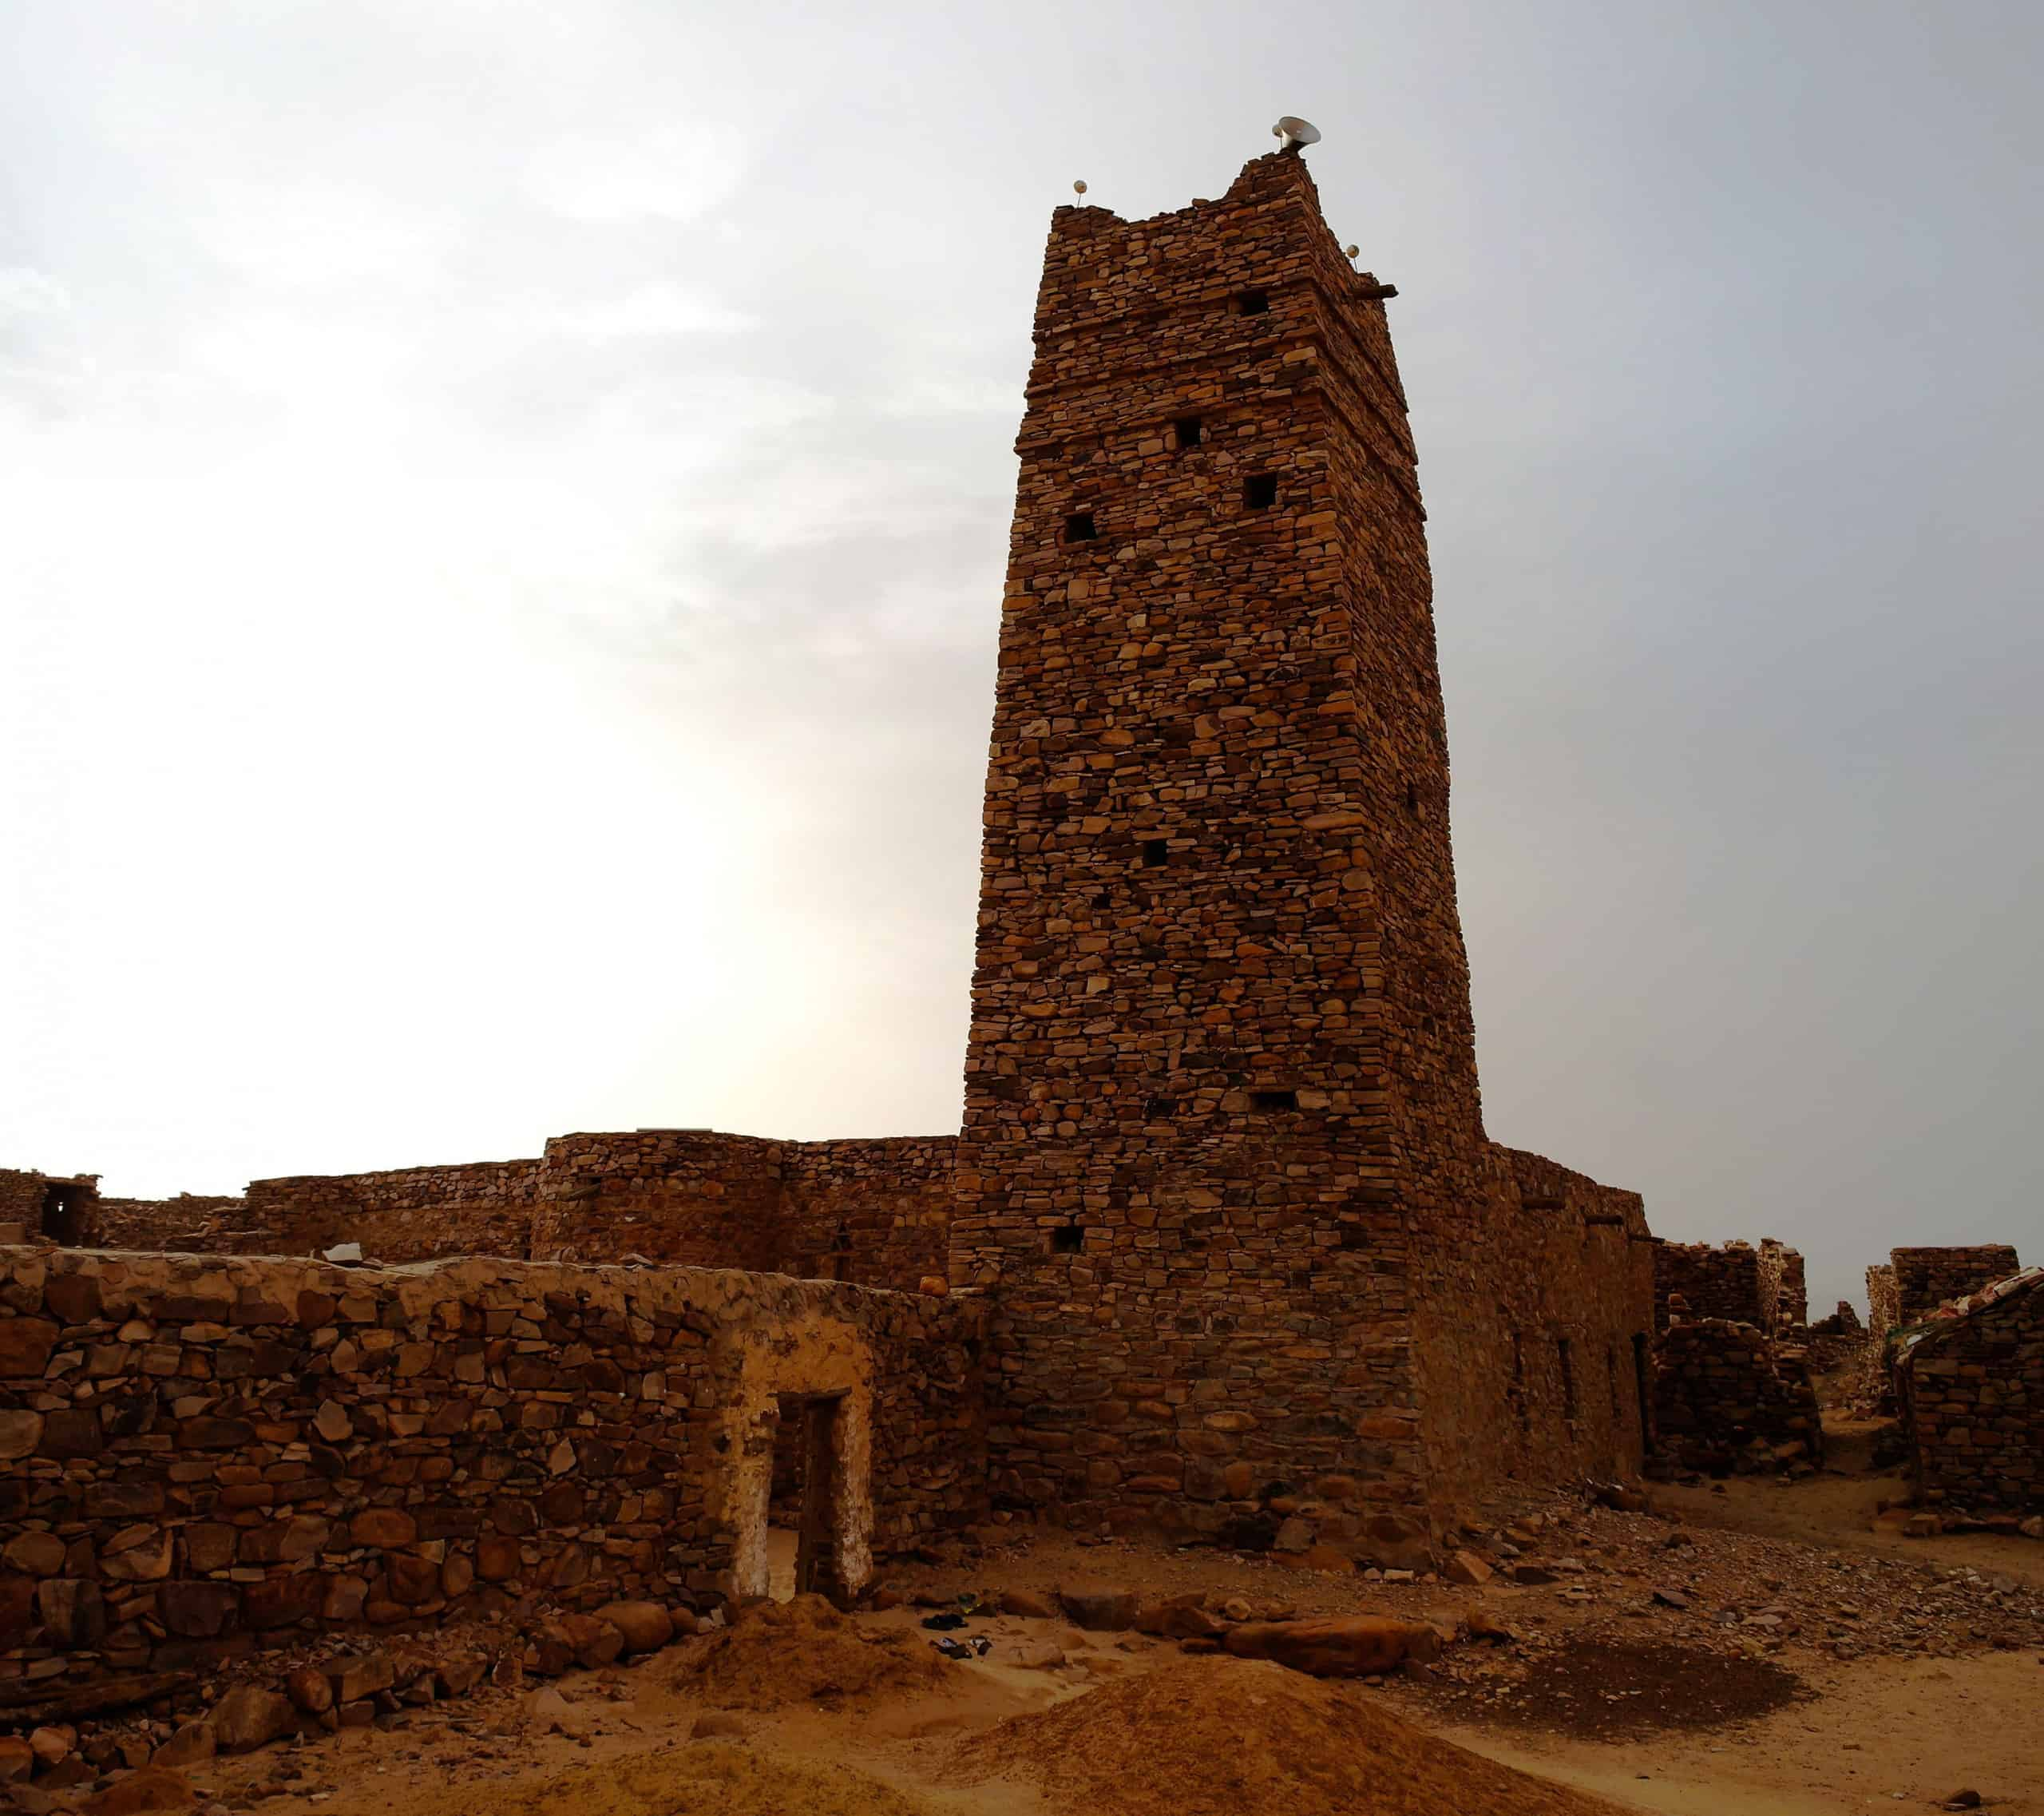 Ruins of Ouadane fortress and mosque in Sahara at Mauritania